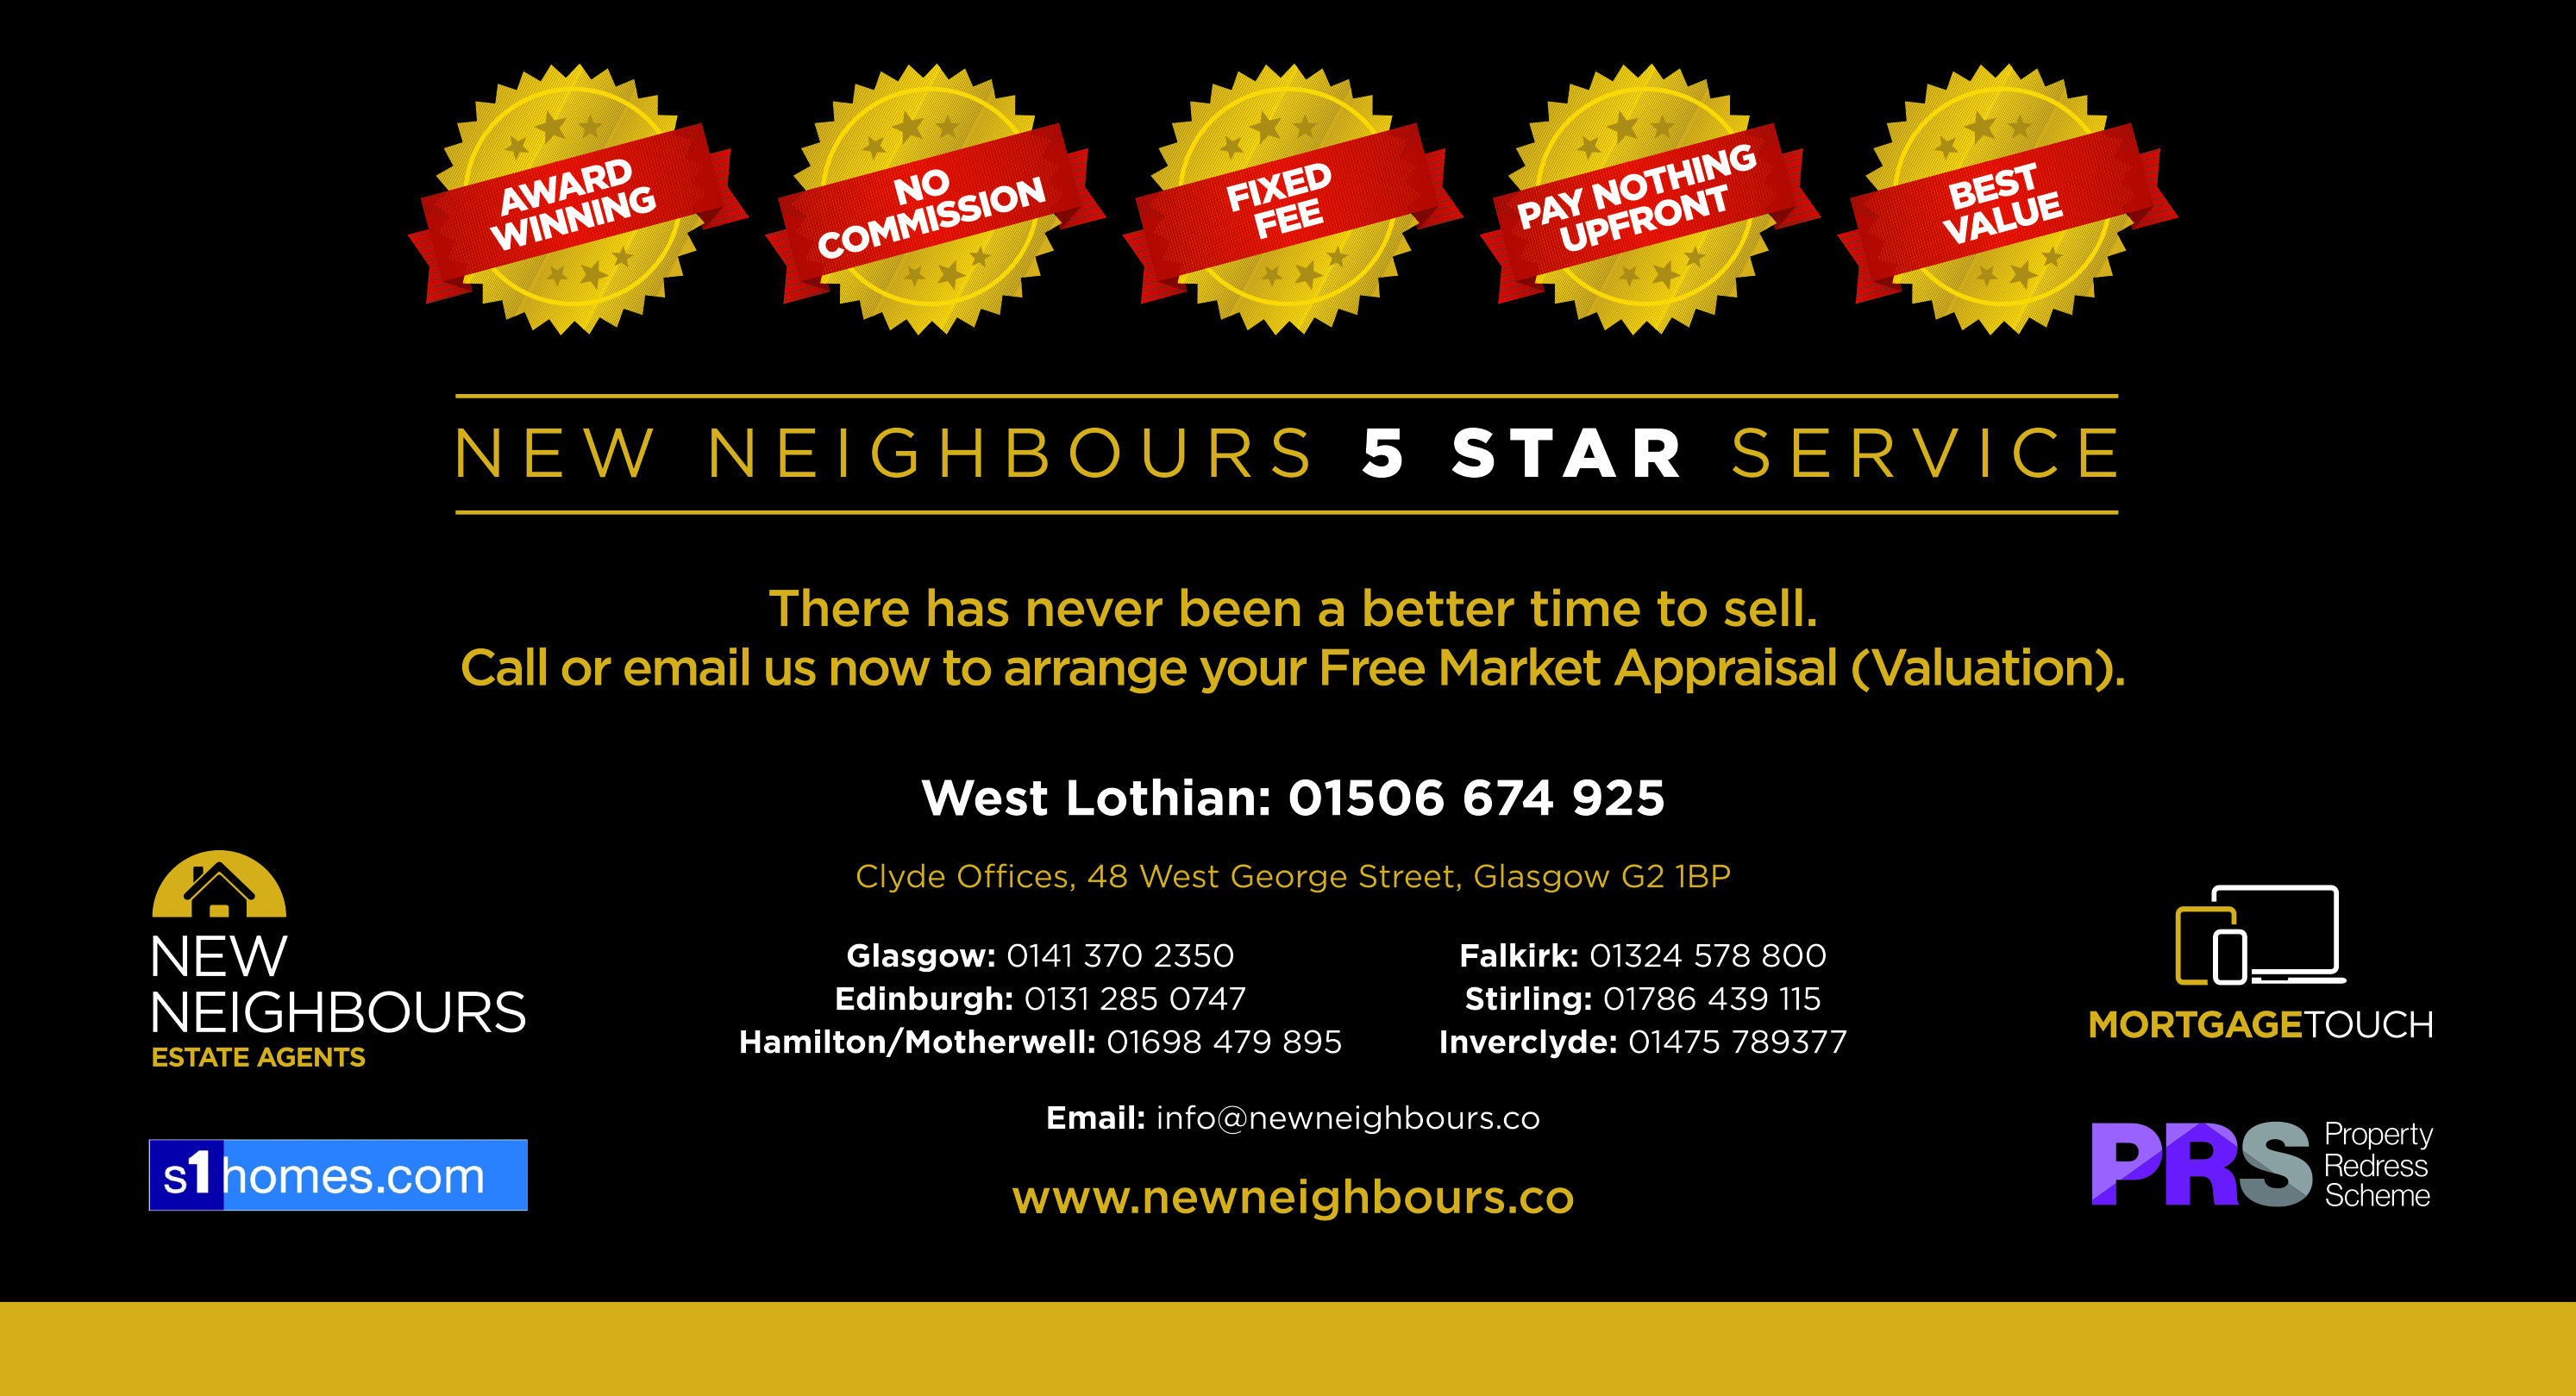 New Neighbours Estate Agents